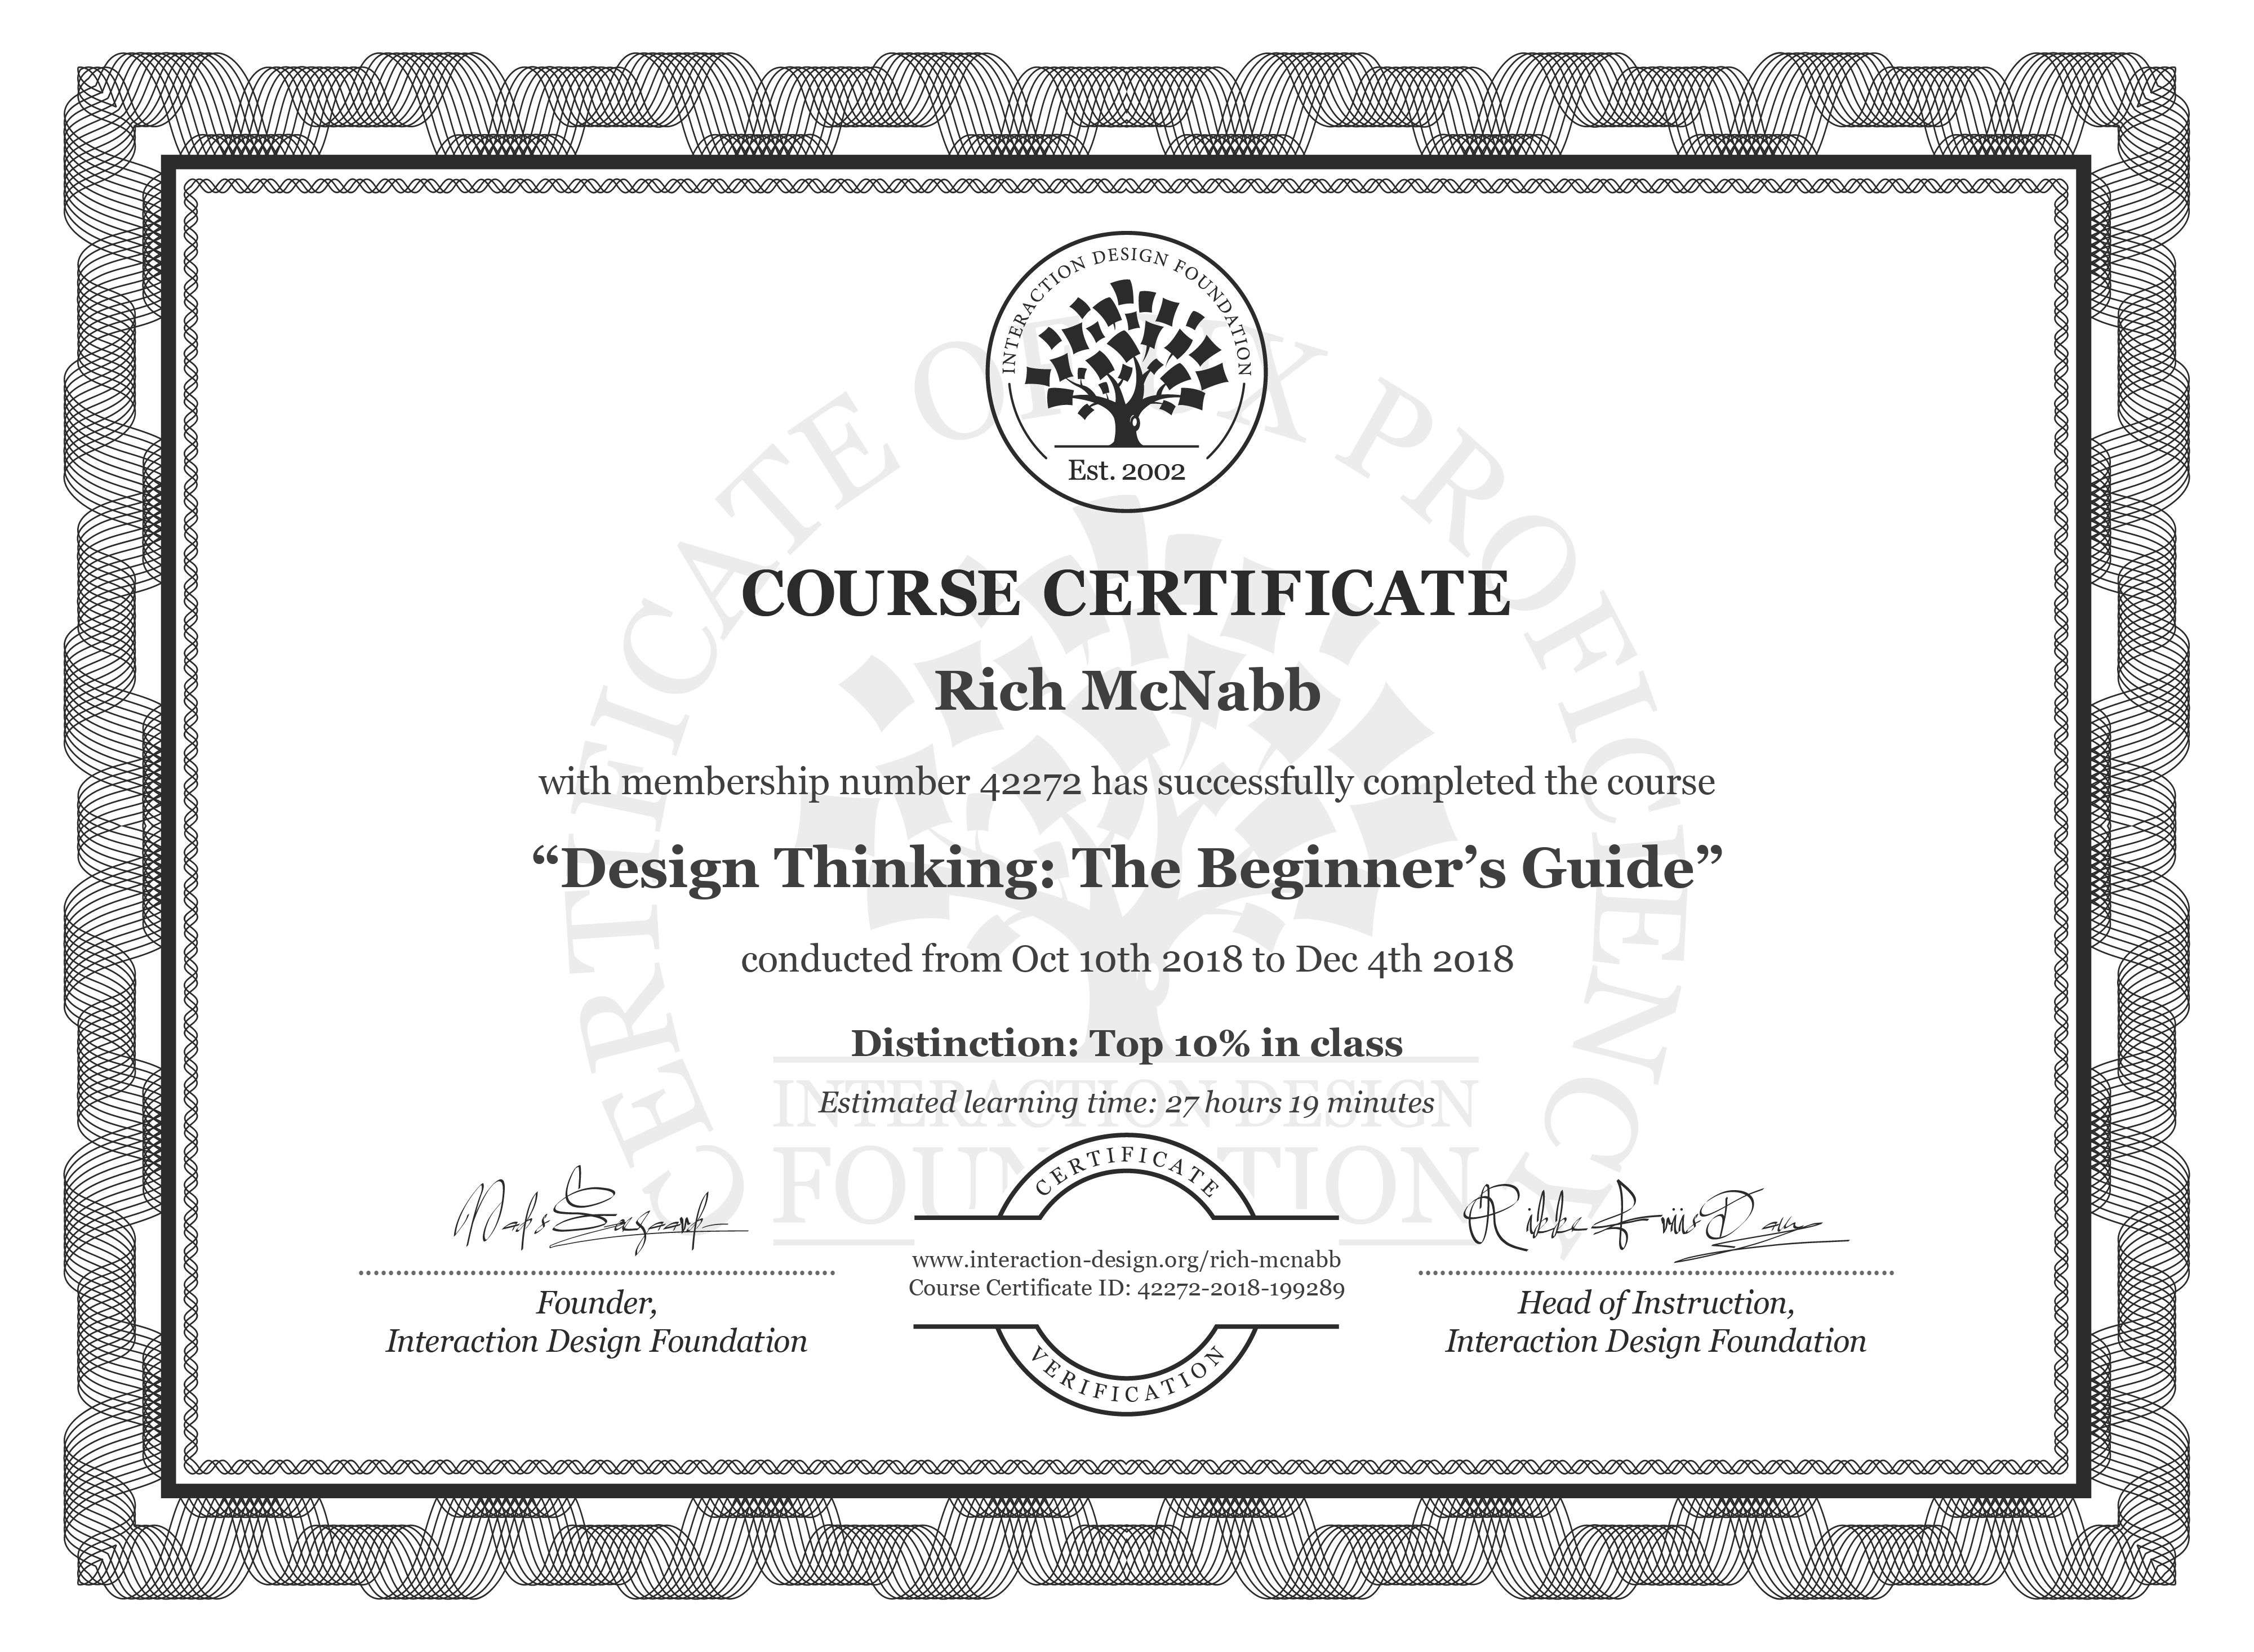 Rich McNabb's Course Certificate: Design Thinking: The Beginner's Guide